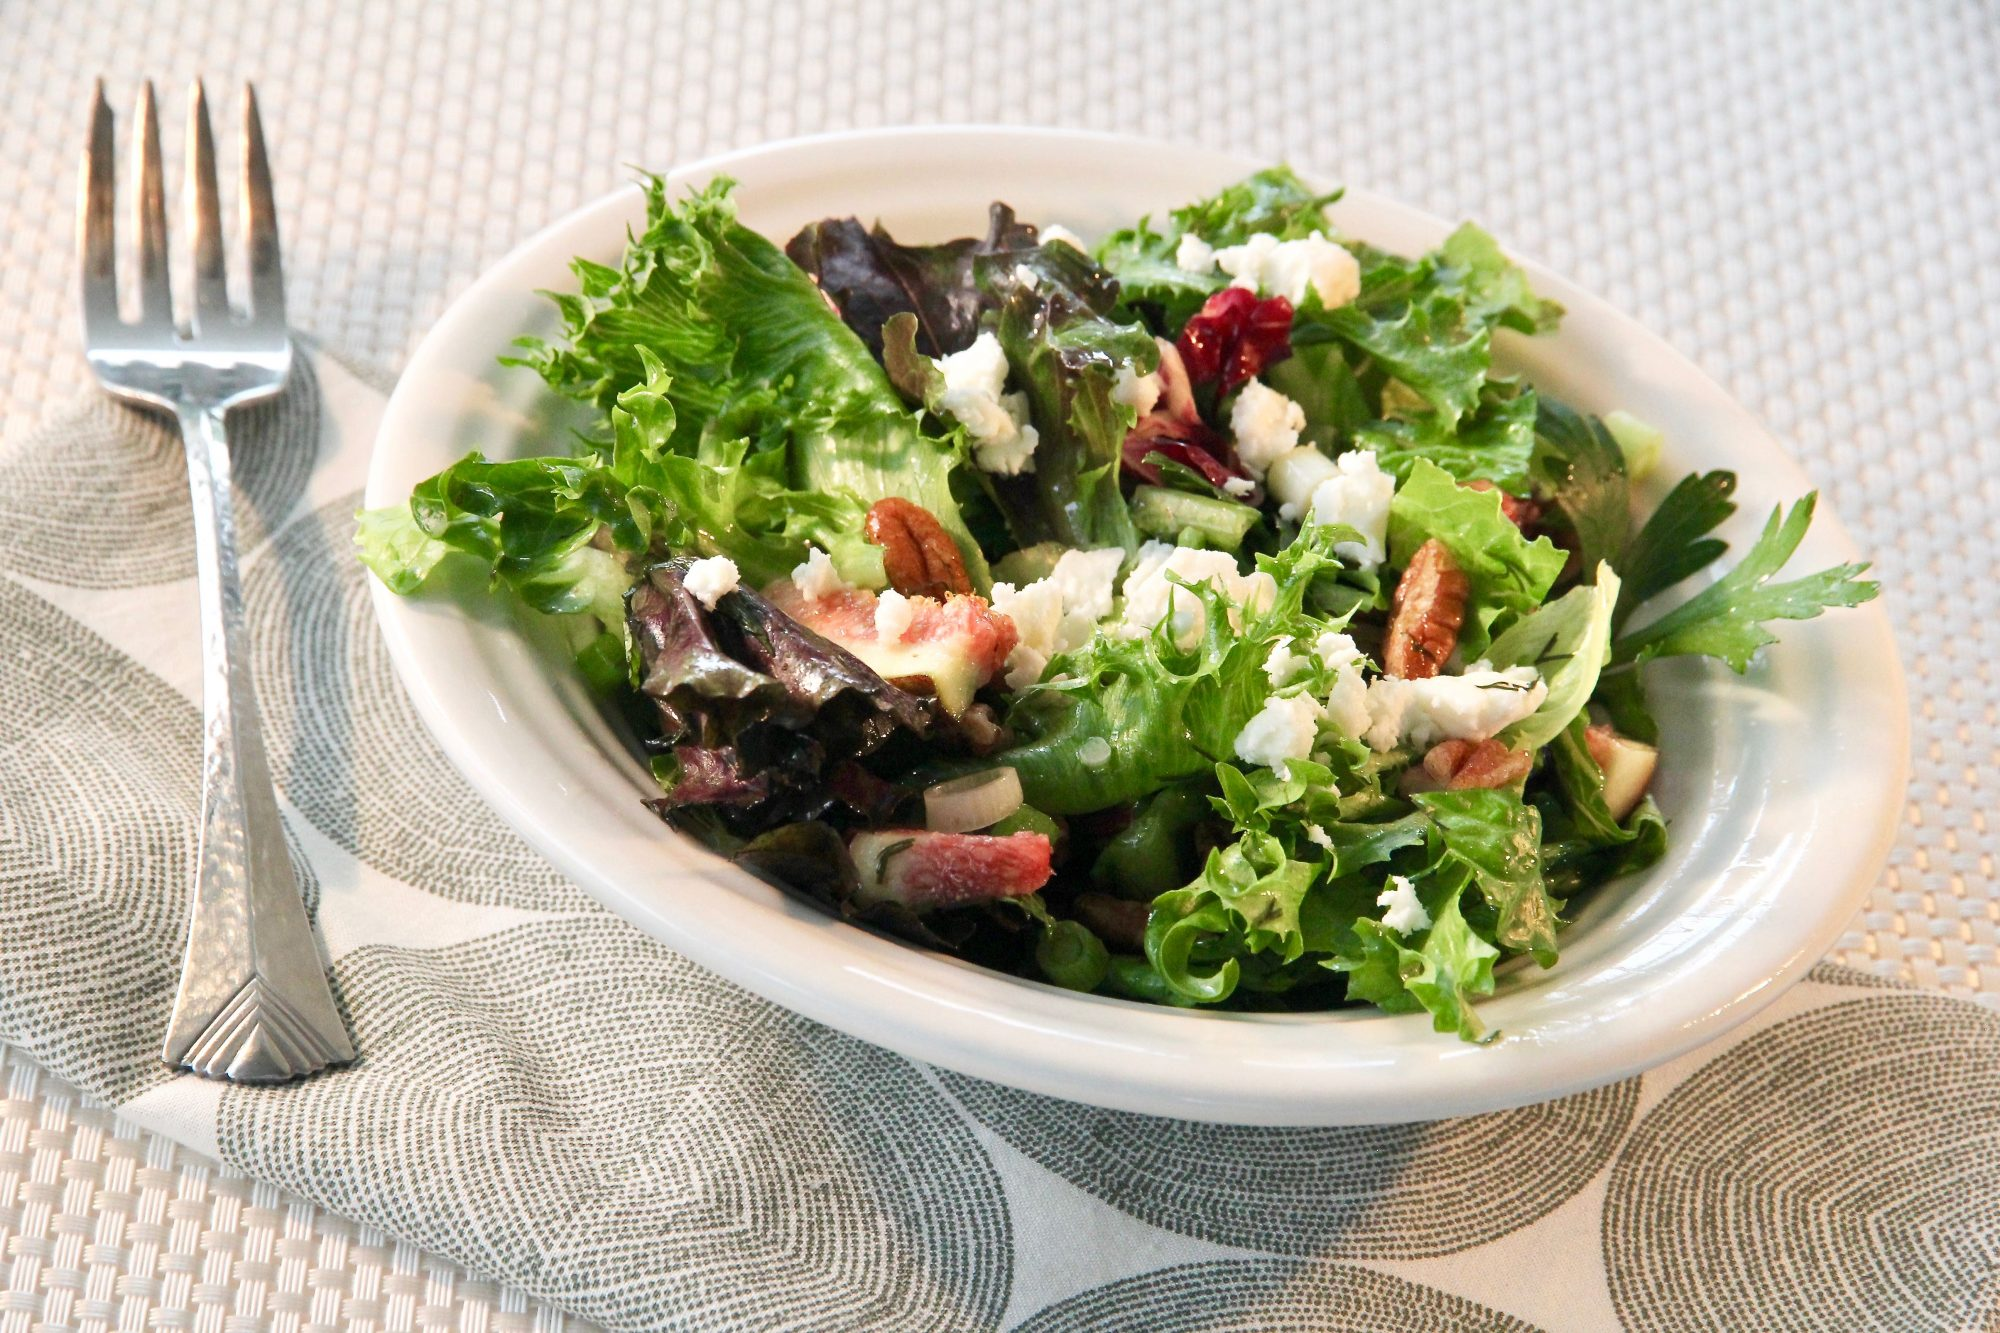 mixed greens with figs, nuts, and cheese in a bowl